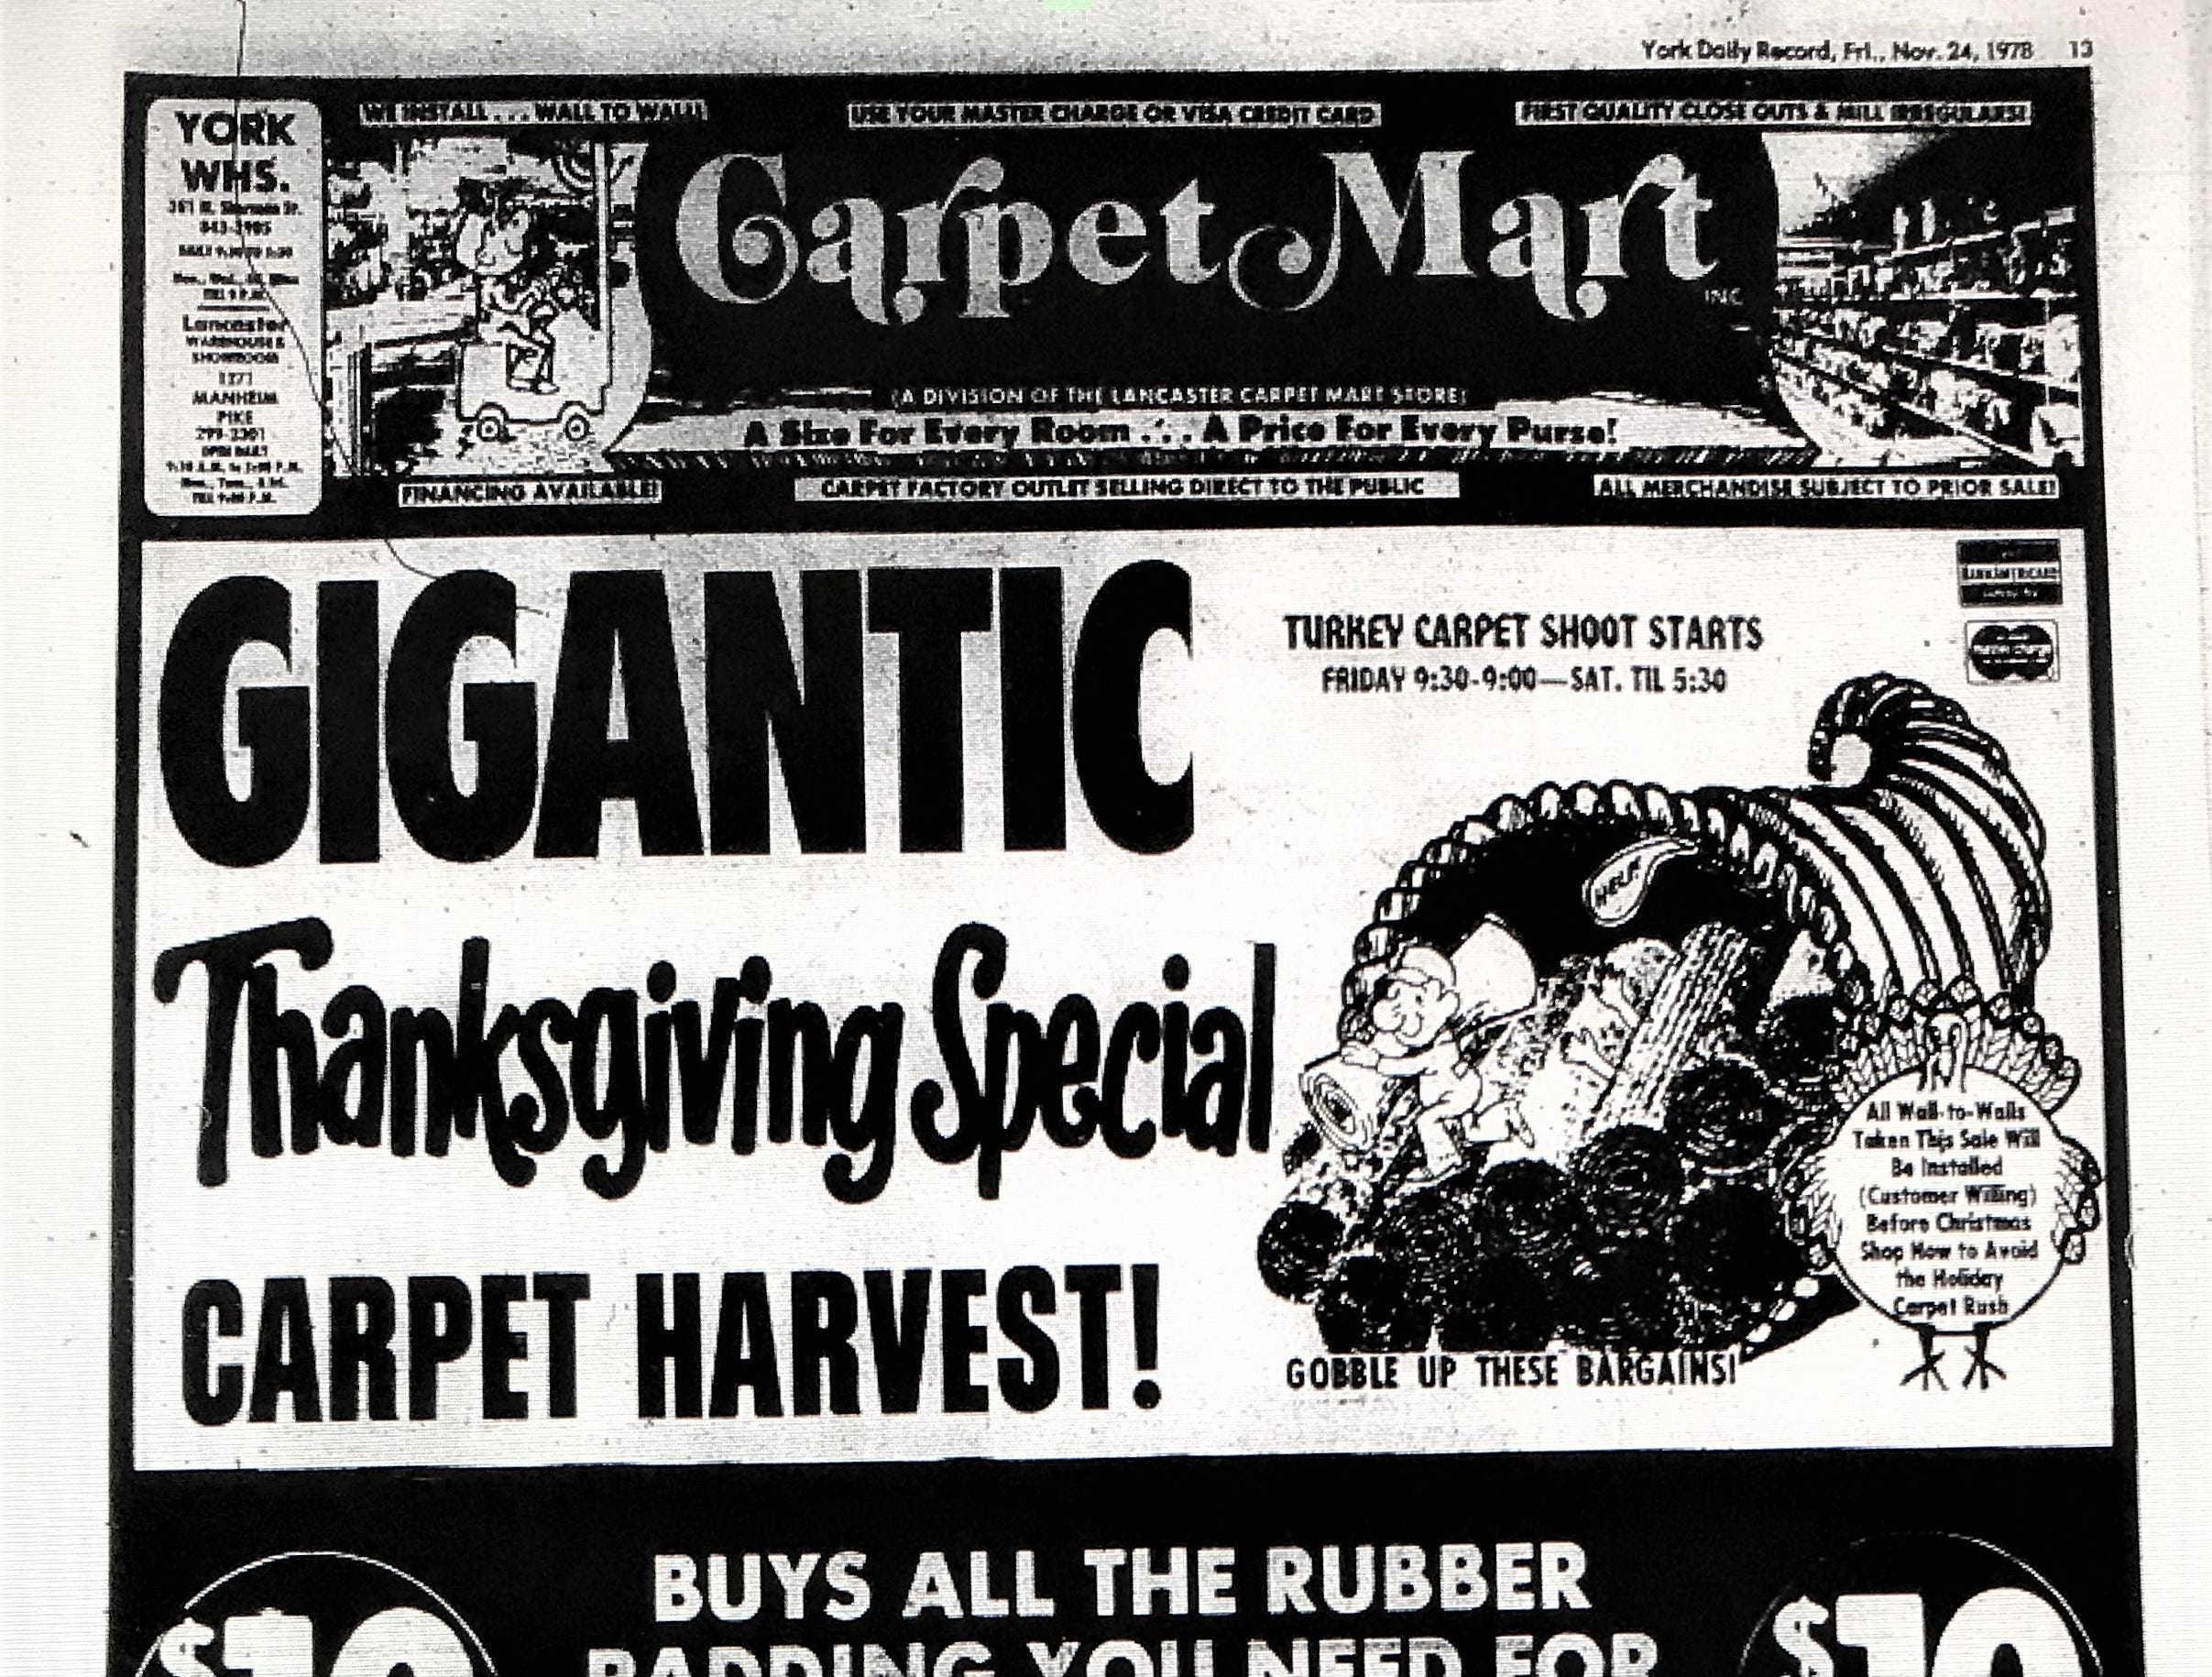 A 1978 Carpet Mart ad for after Thanksgiving sales.